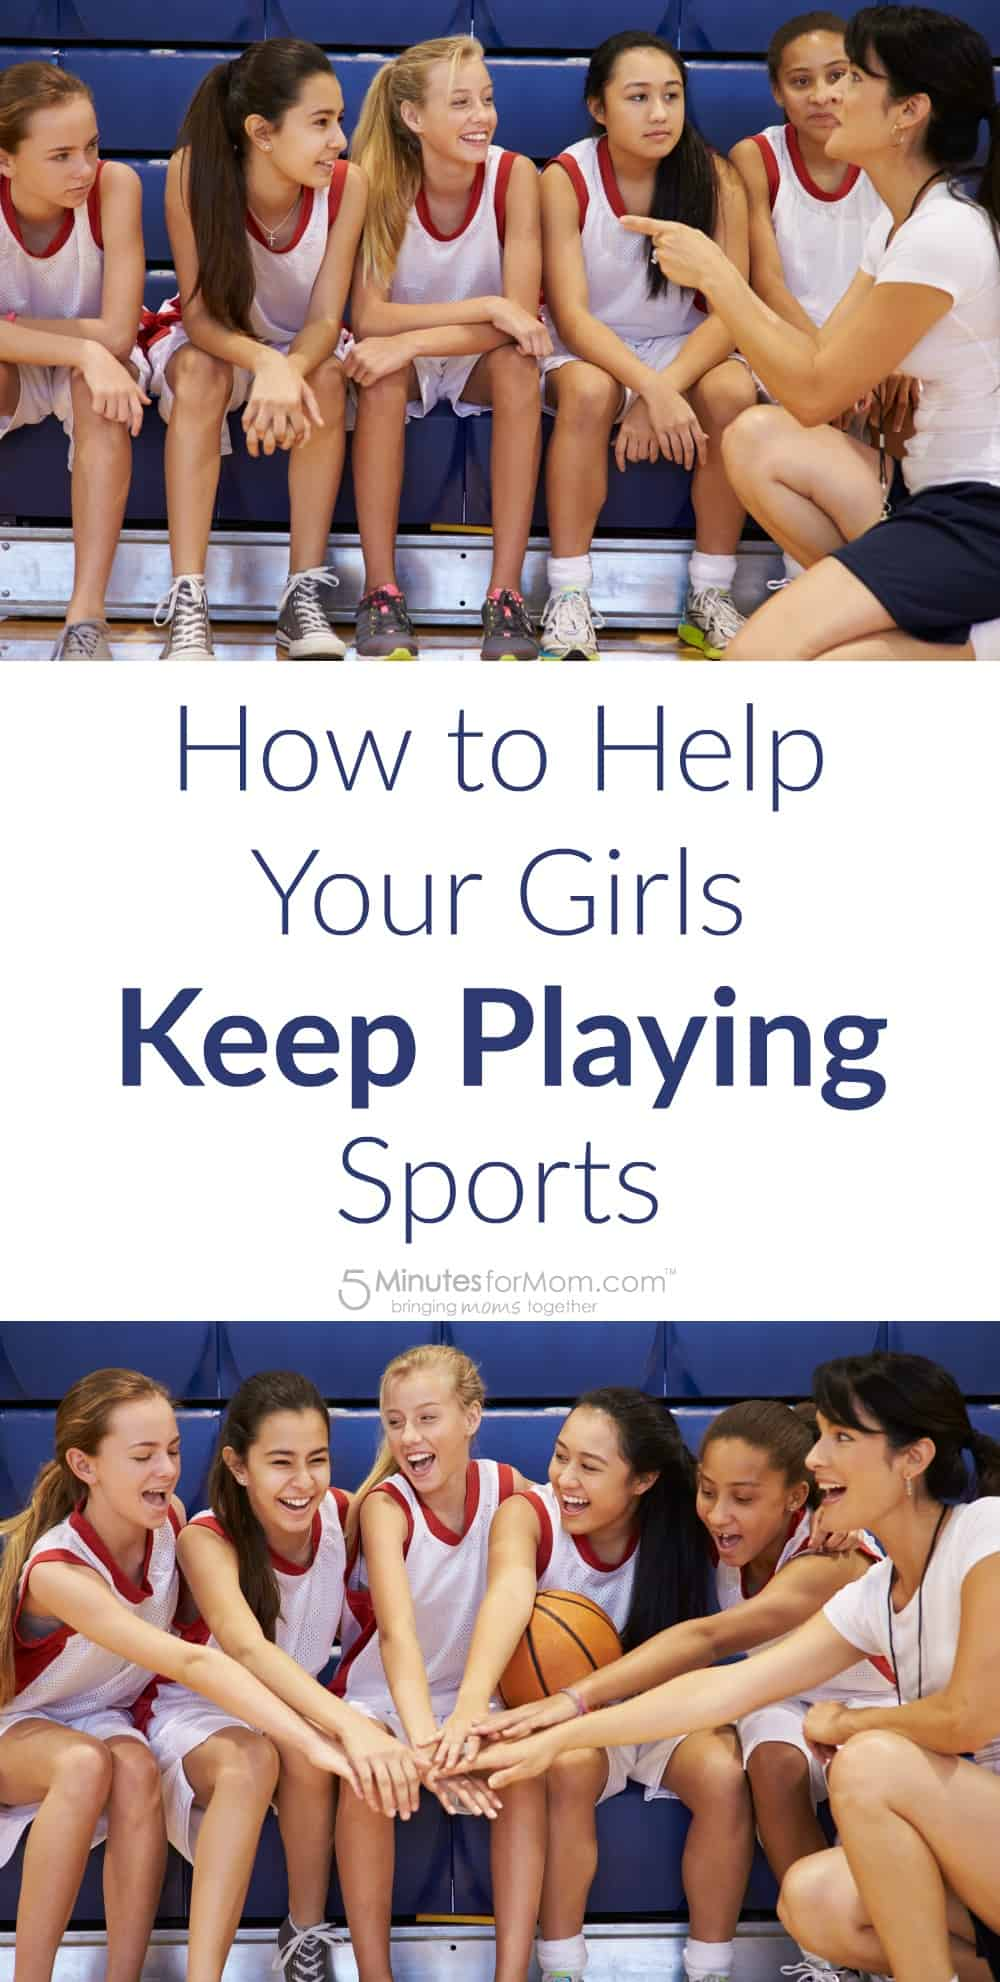 How to Help Your Girls Keep Playing Sports